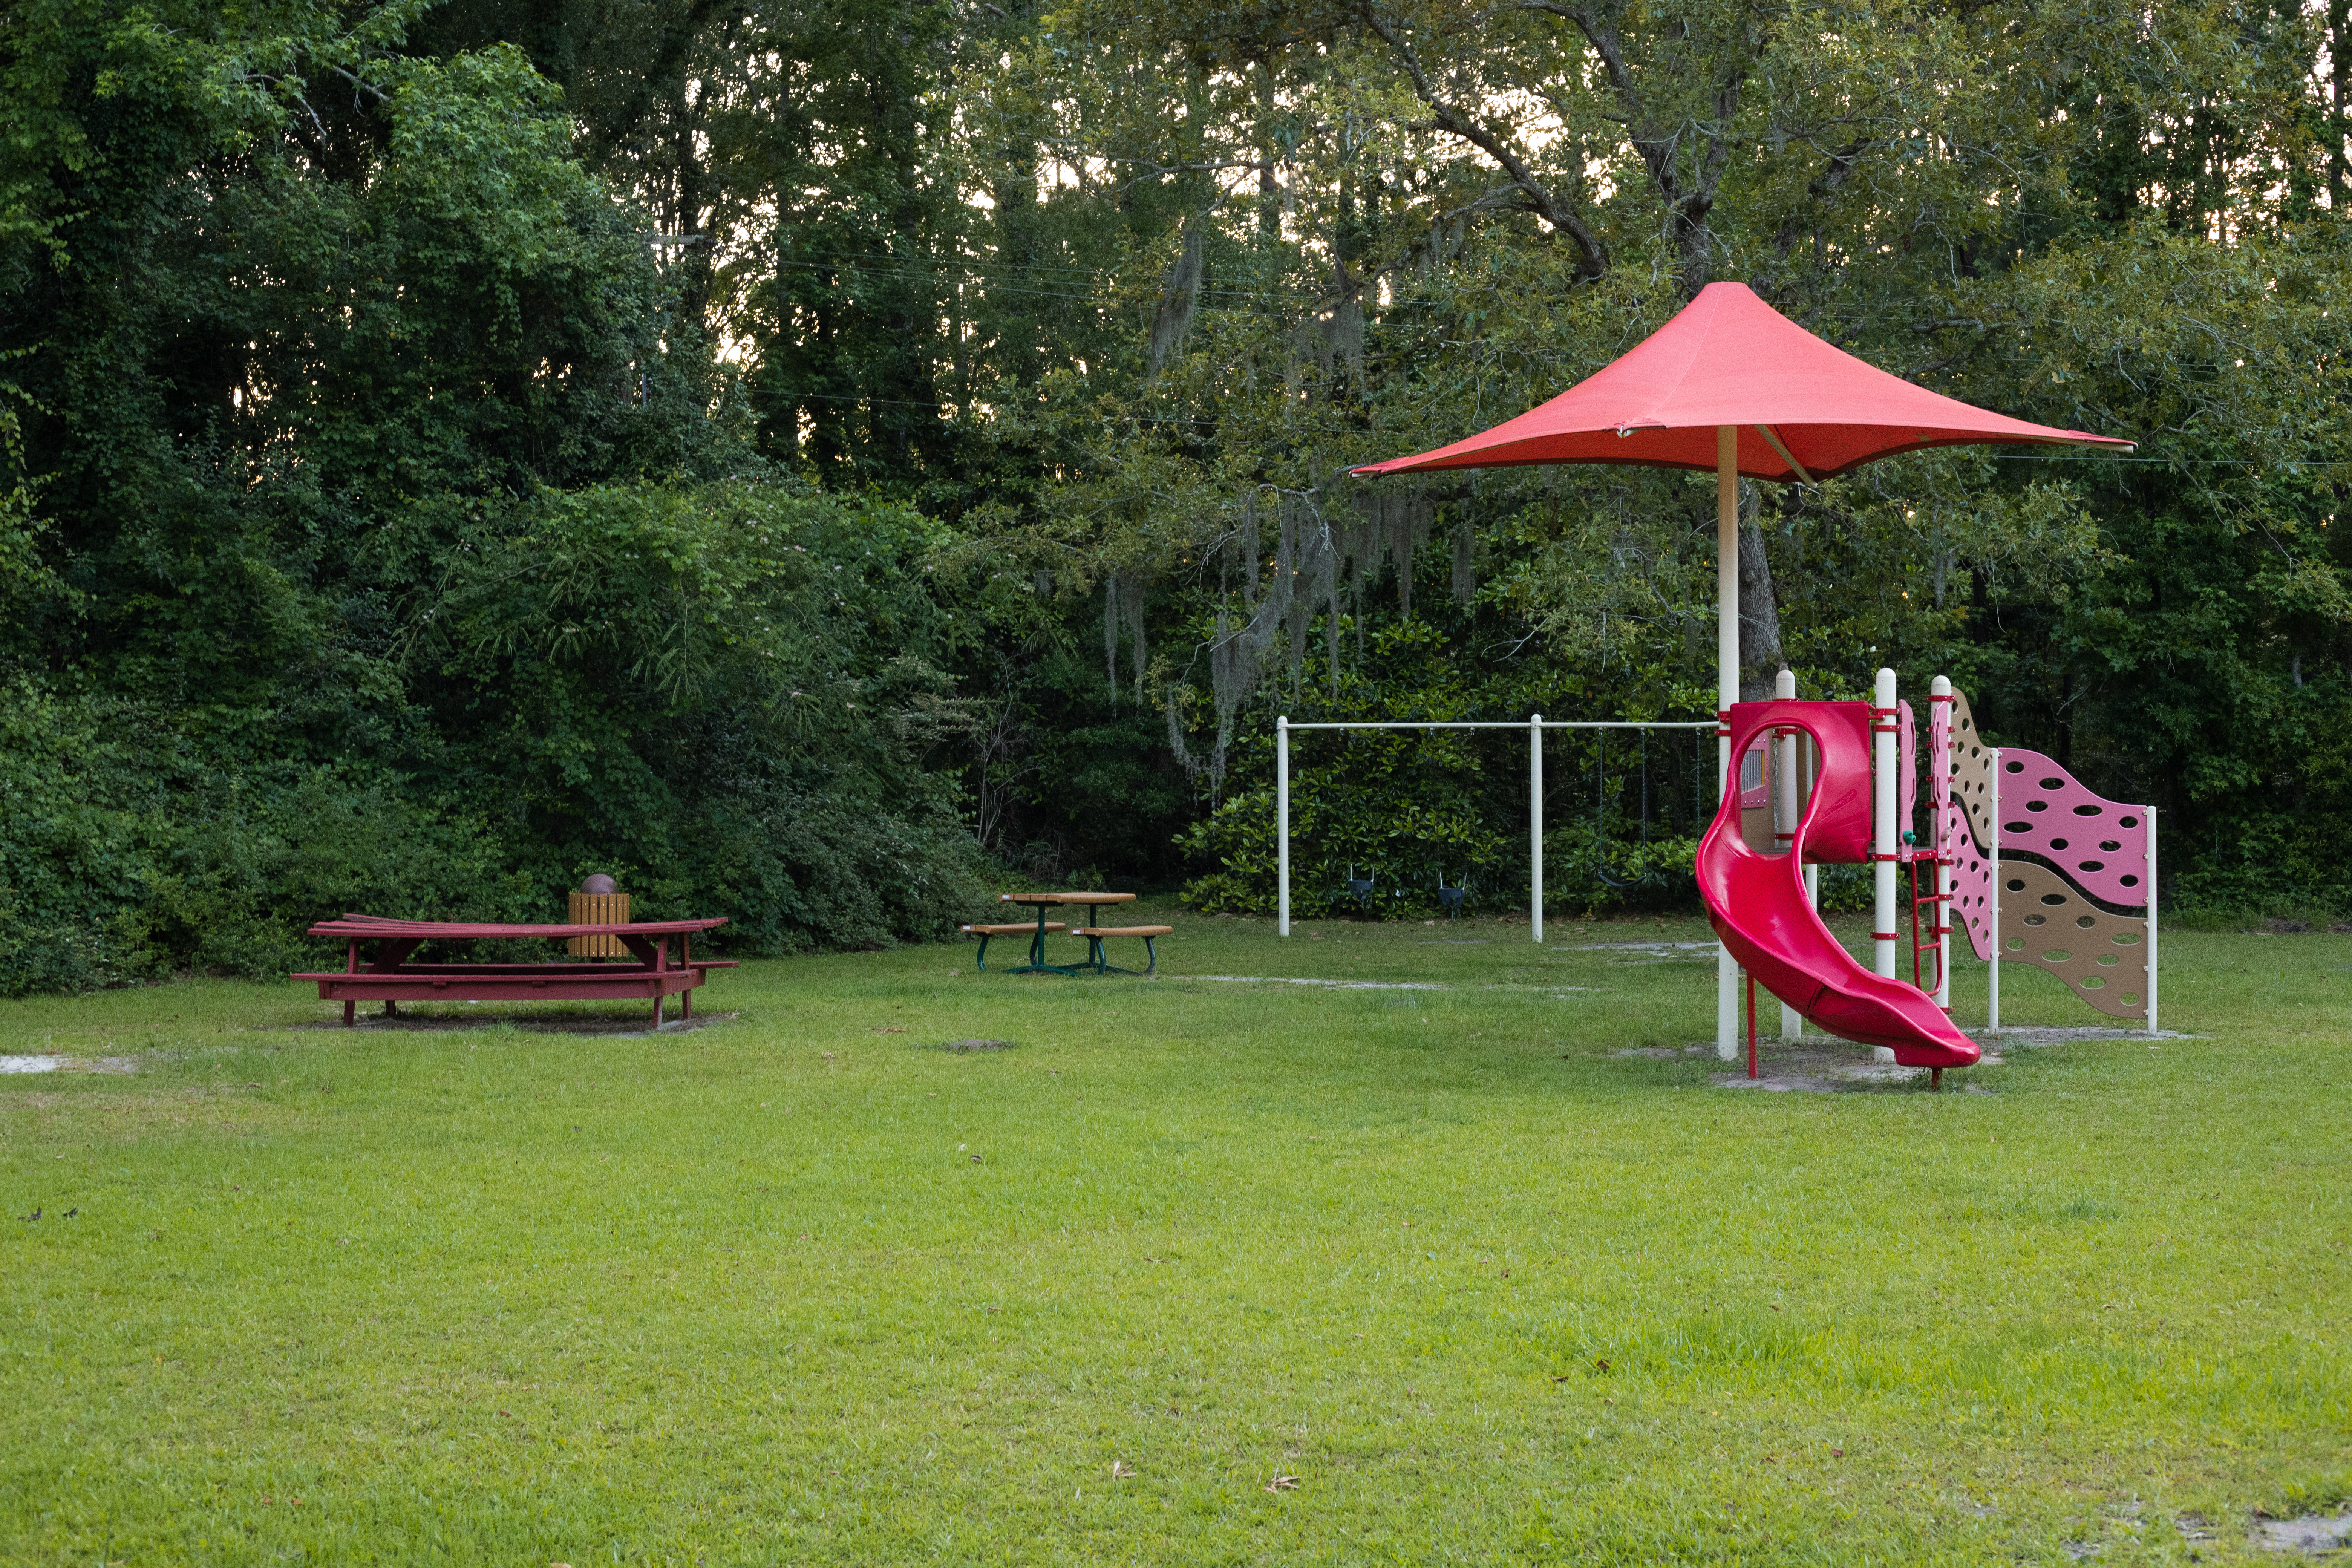 playground structure and red picnic tables